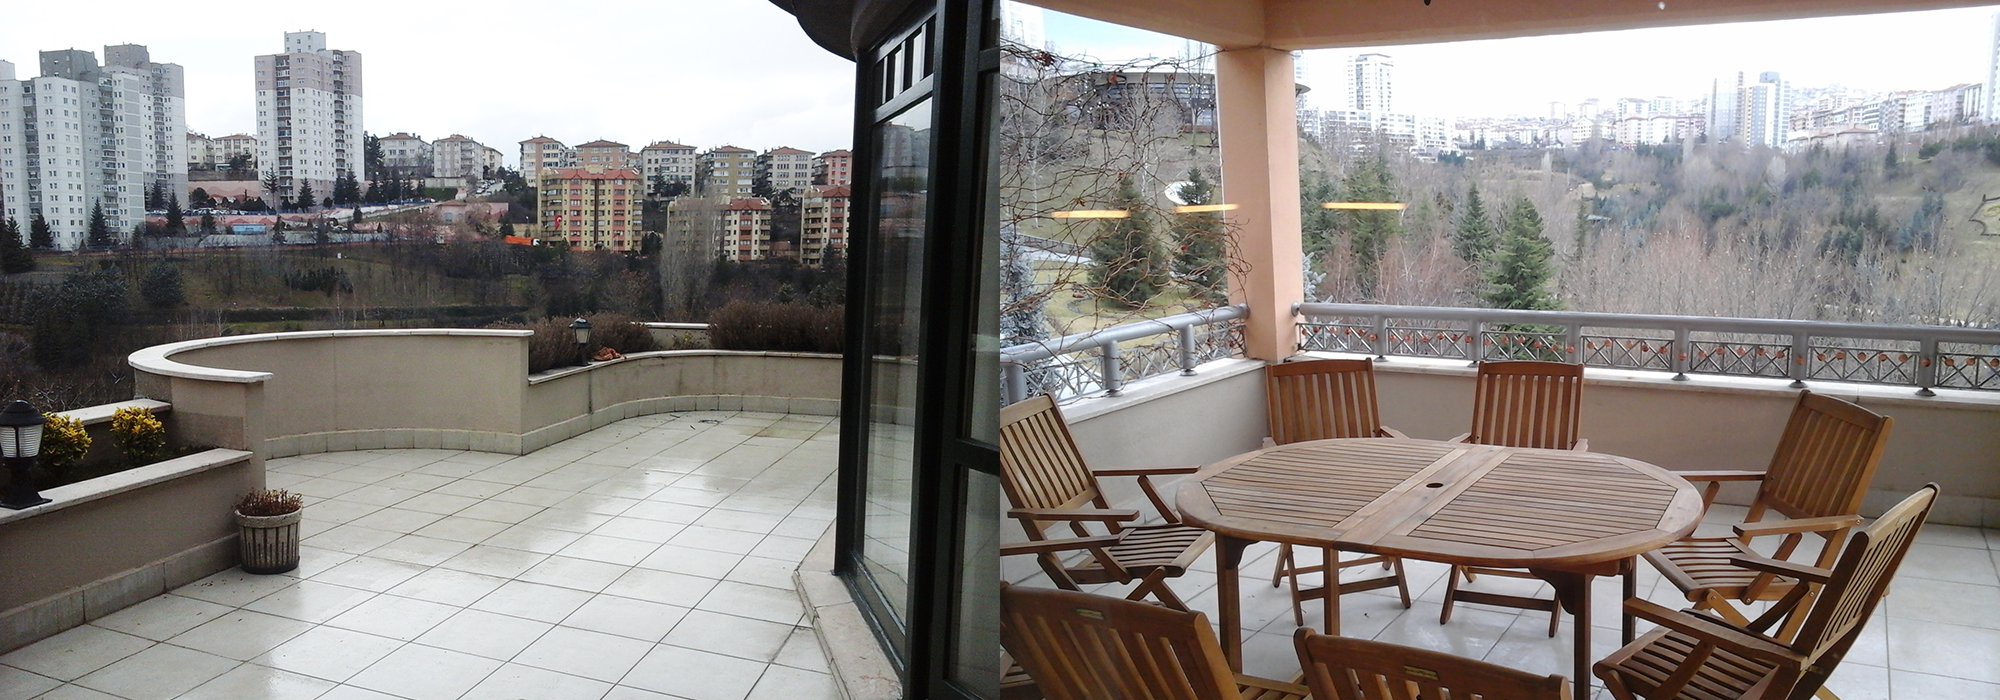 FURNISHED 4+1+TERRACE APARTMENT WITH PANORAMIC VALLEY VIEW IN ÇANKAYA